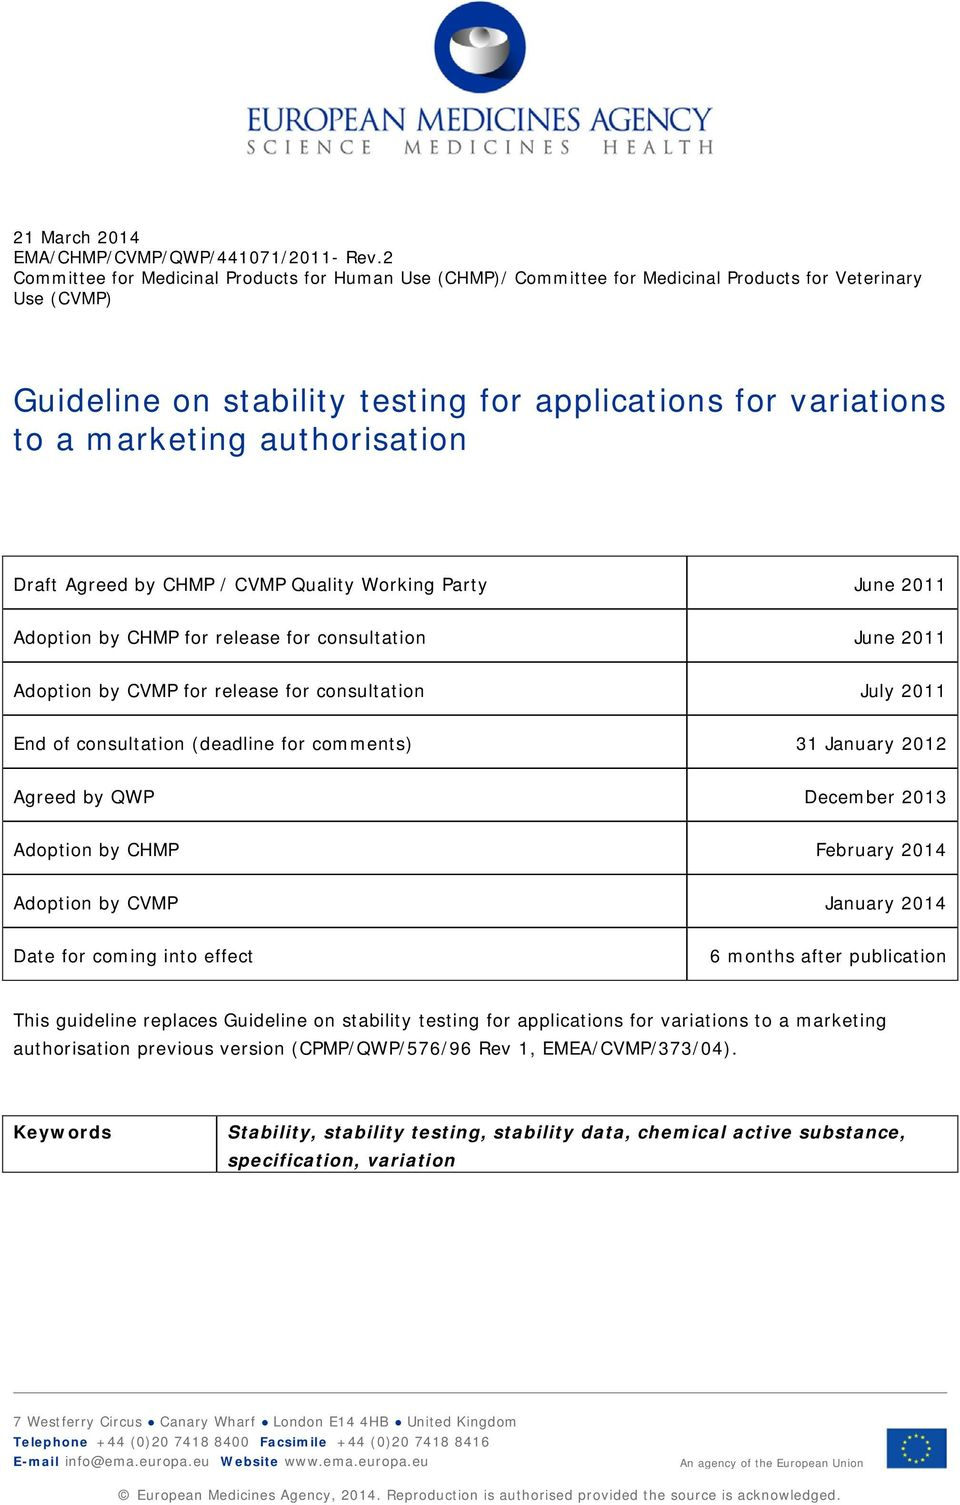 authorisation Draft Agreed by CHMP / CVMP Quality Working Party June 2011 Adoption by CHMP for release for consultation June 2011 Adoption by CVMP for release for consultation July 2011 End of